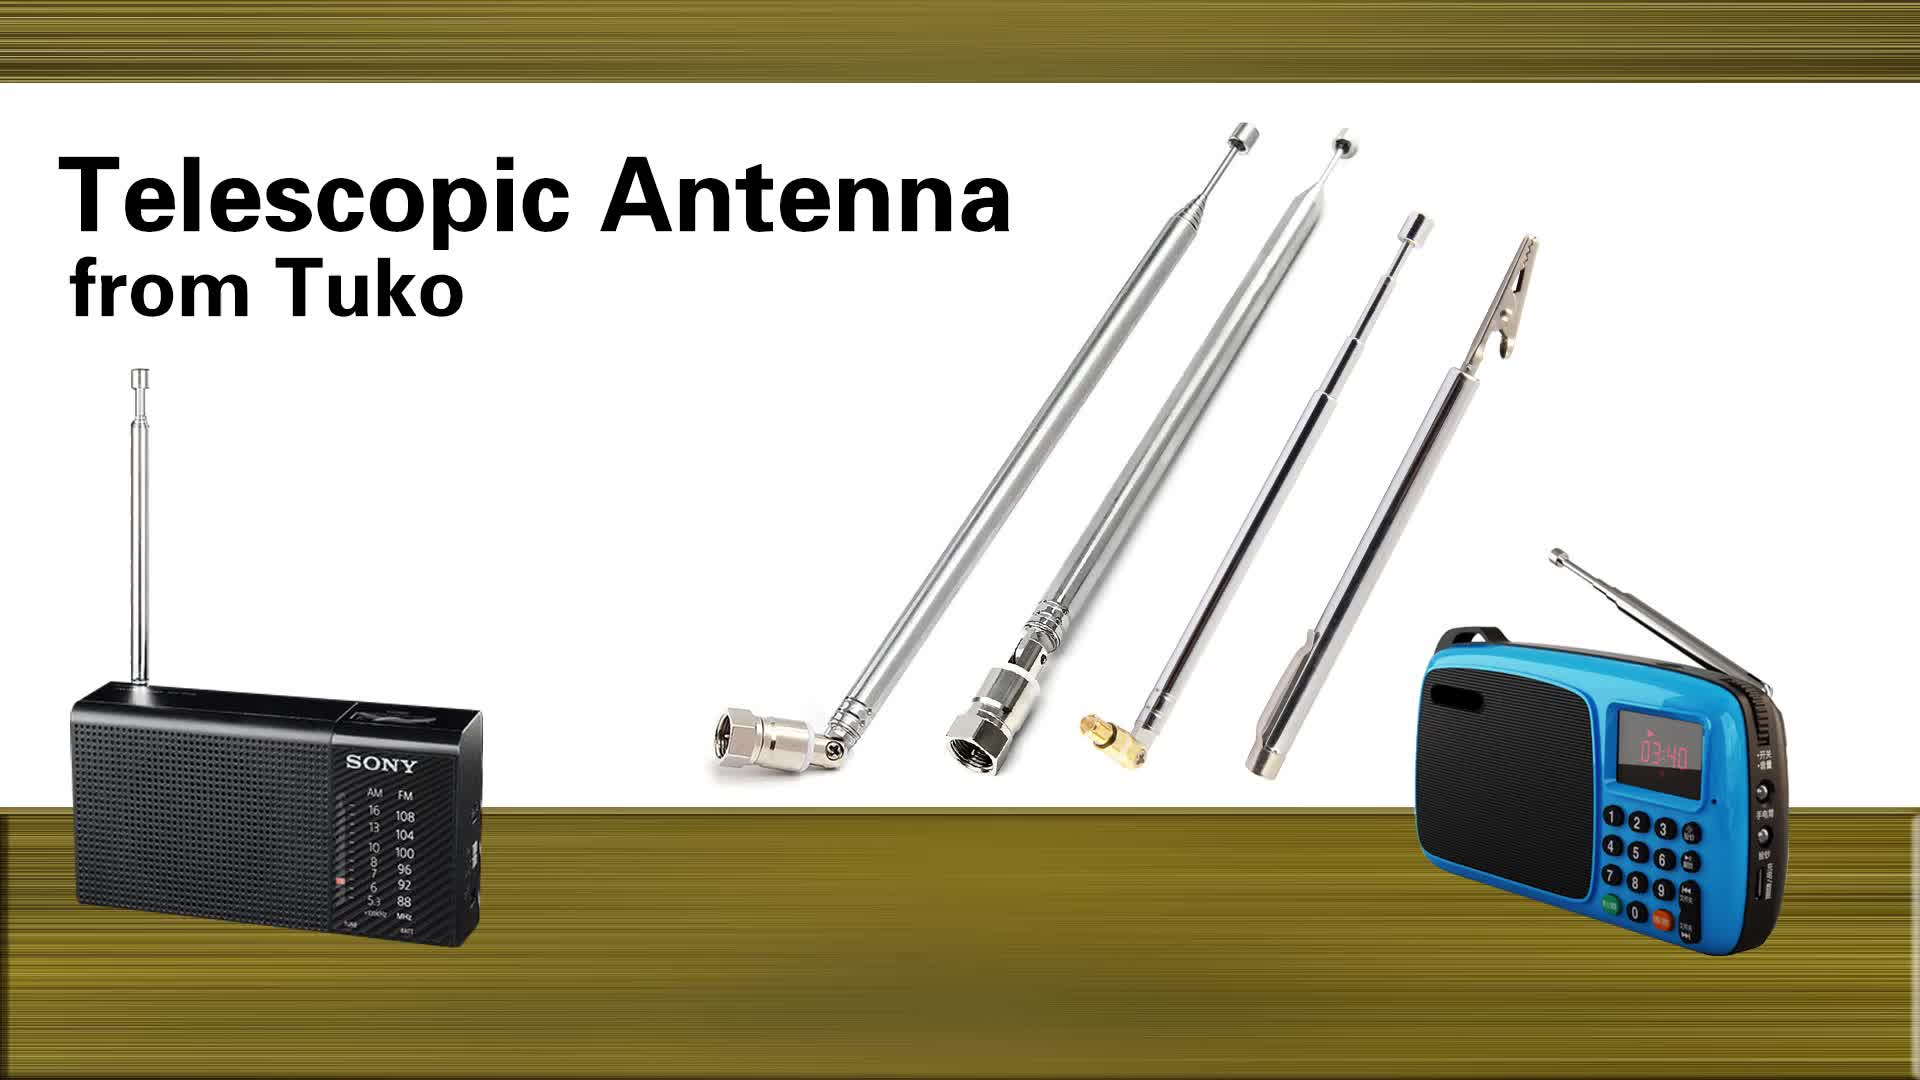 toy remote control antenna with telescopic rod